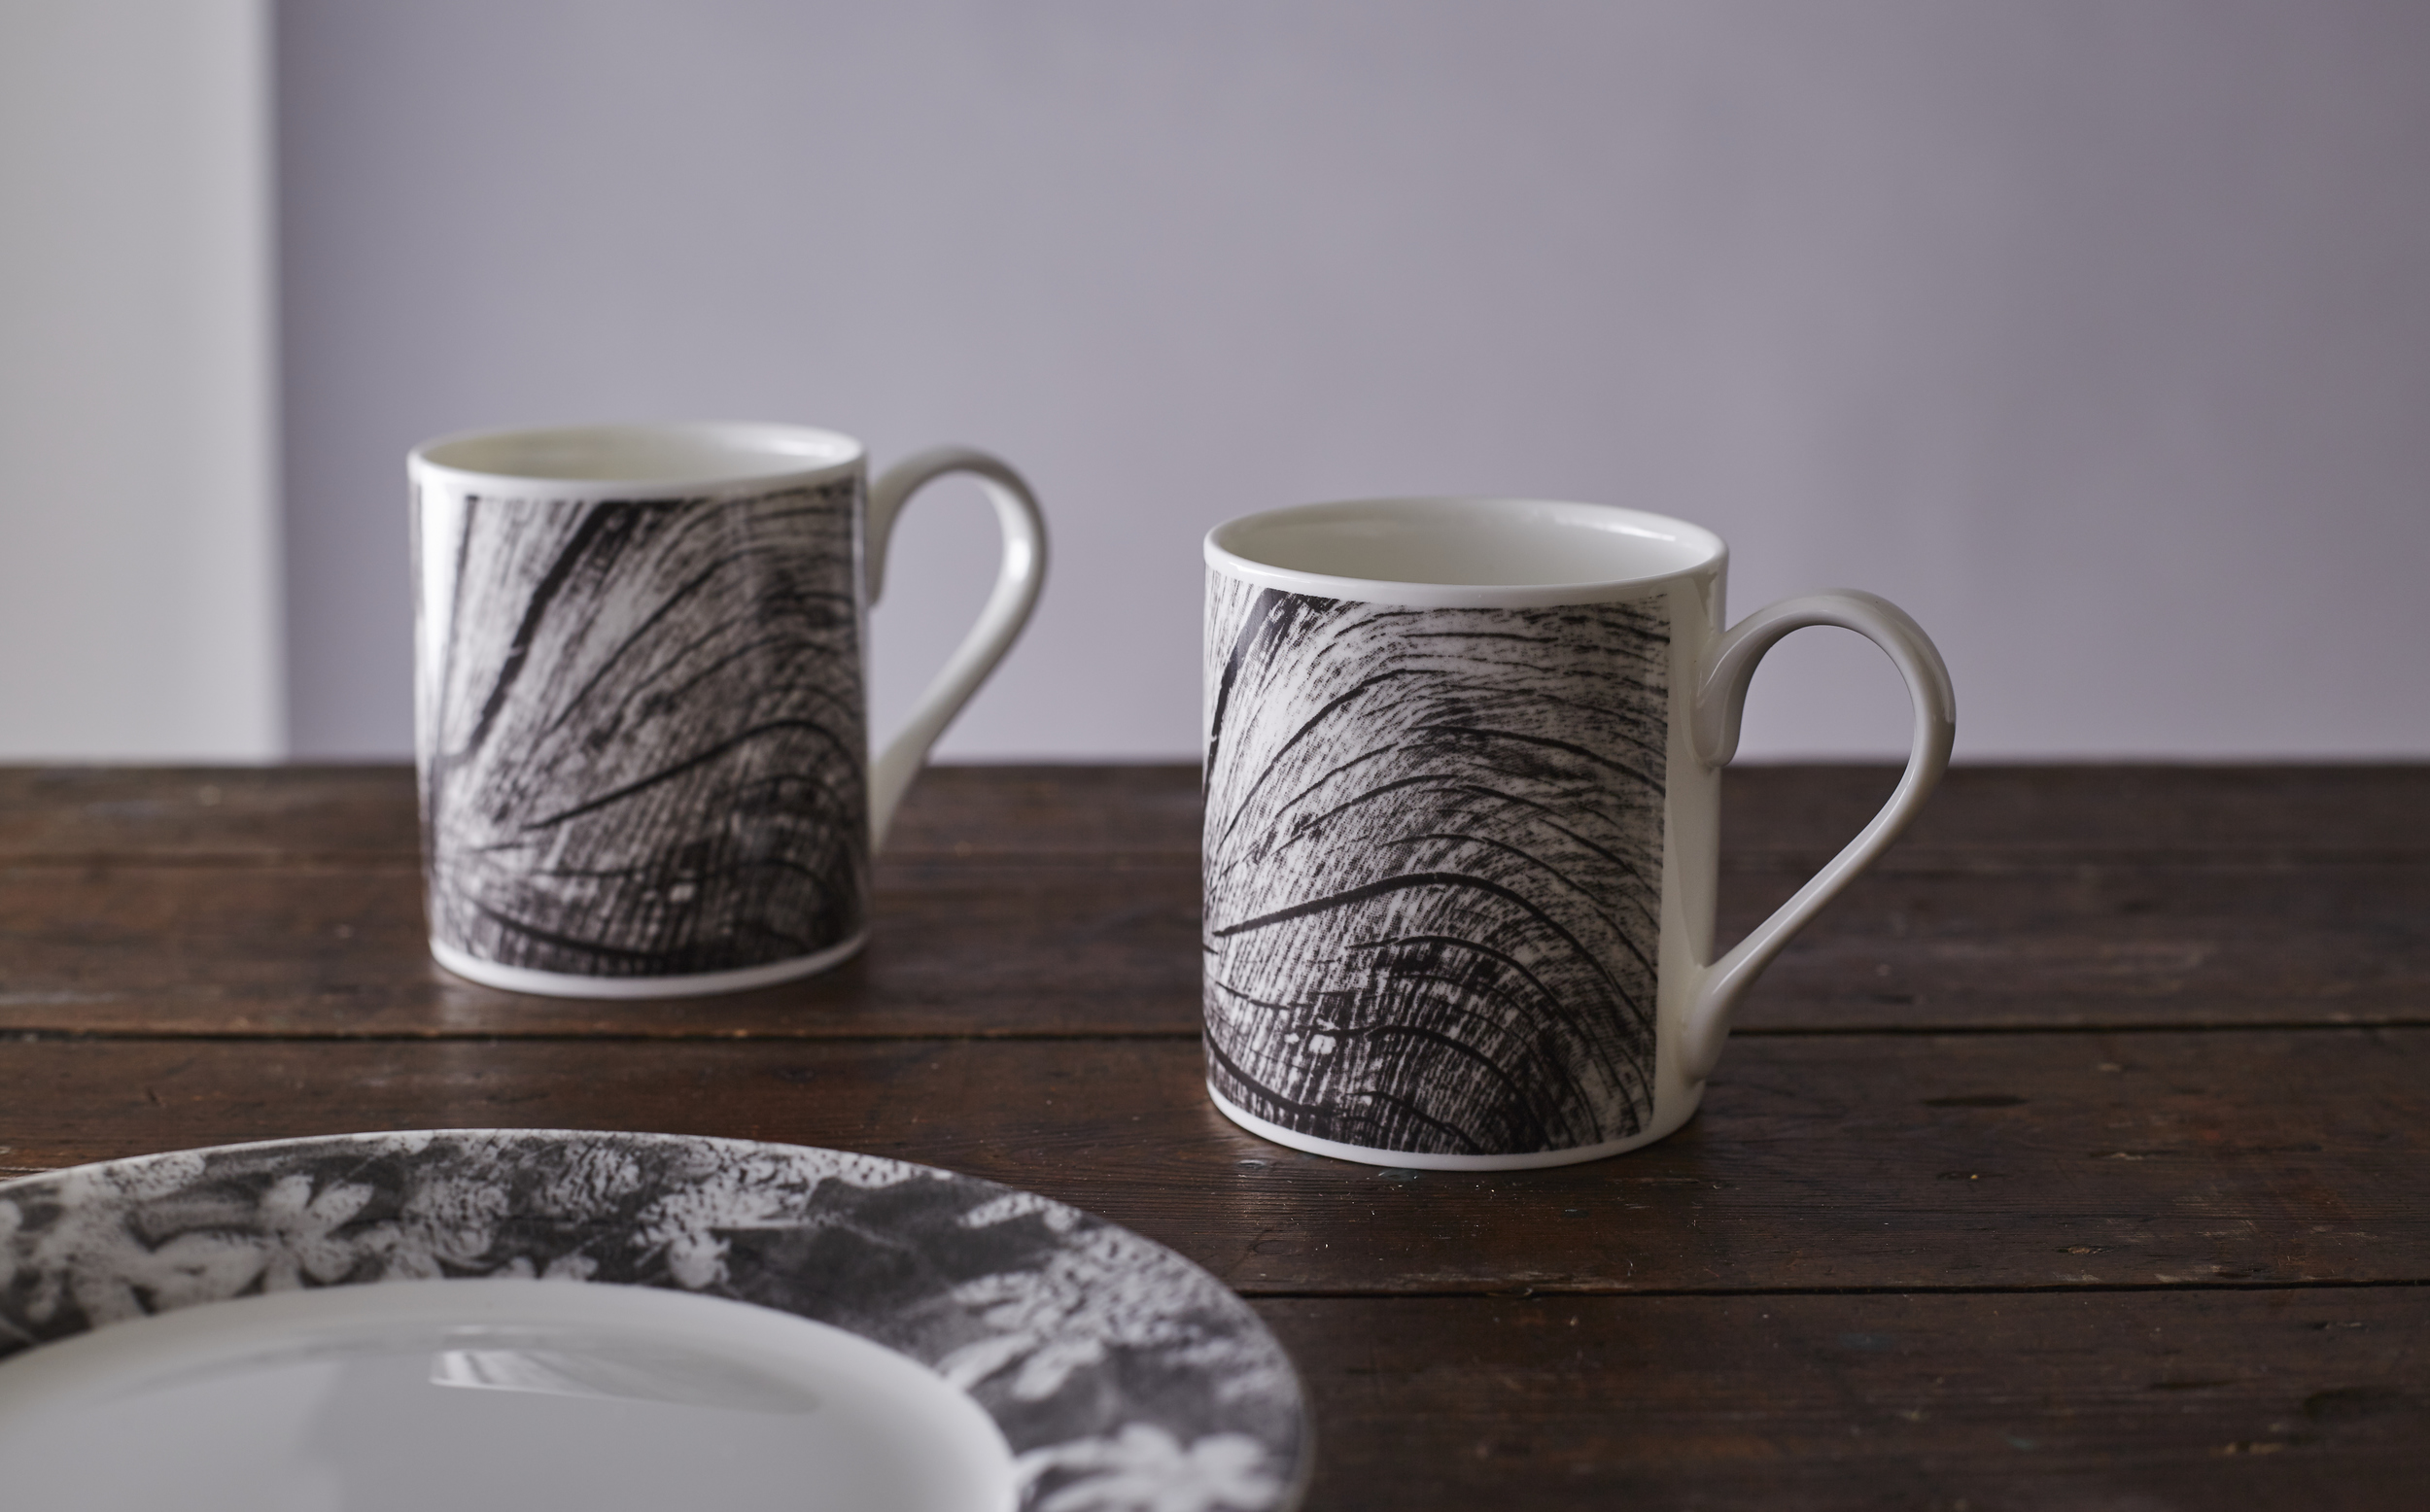 Woodcut mugs and Wood Anemone side plate from the Forest Tableware range